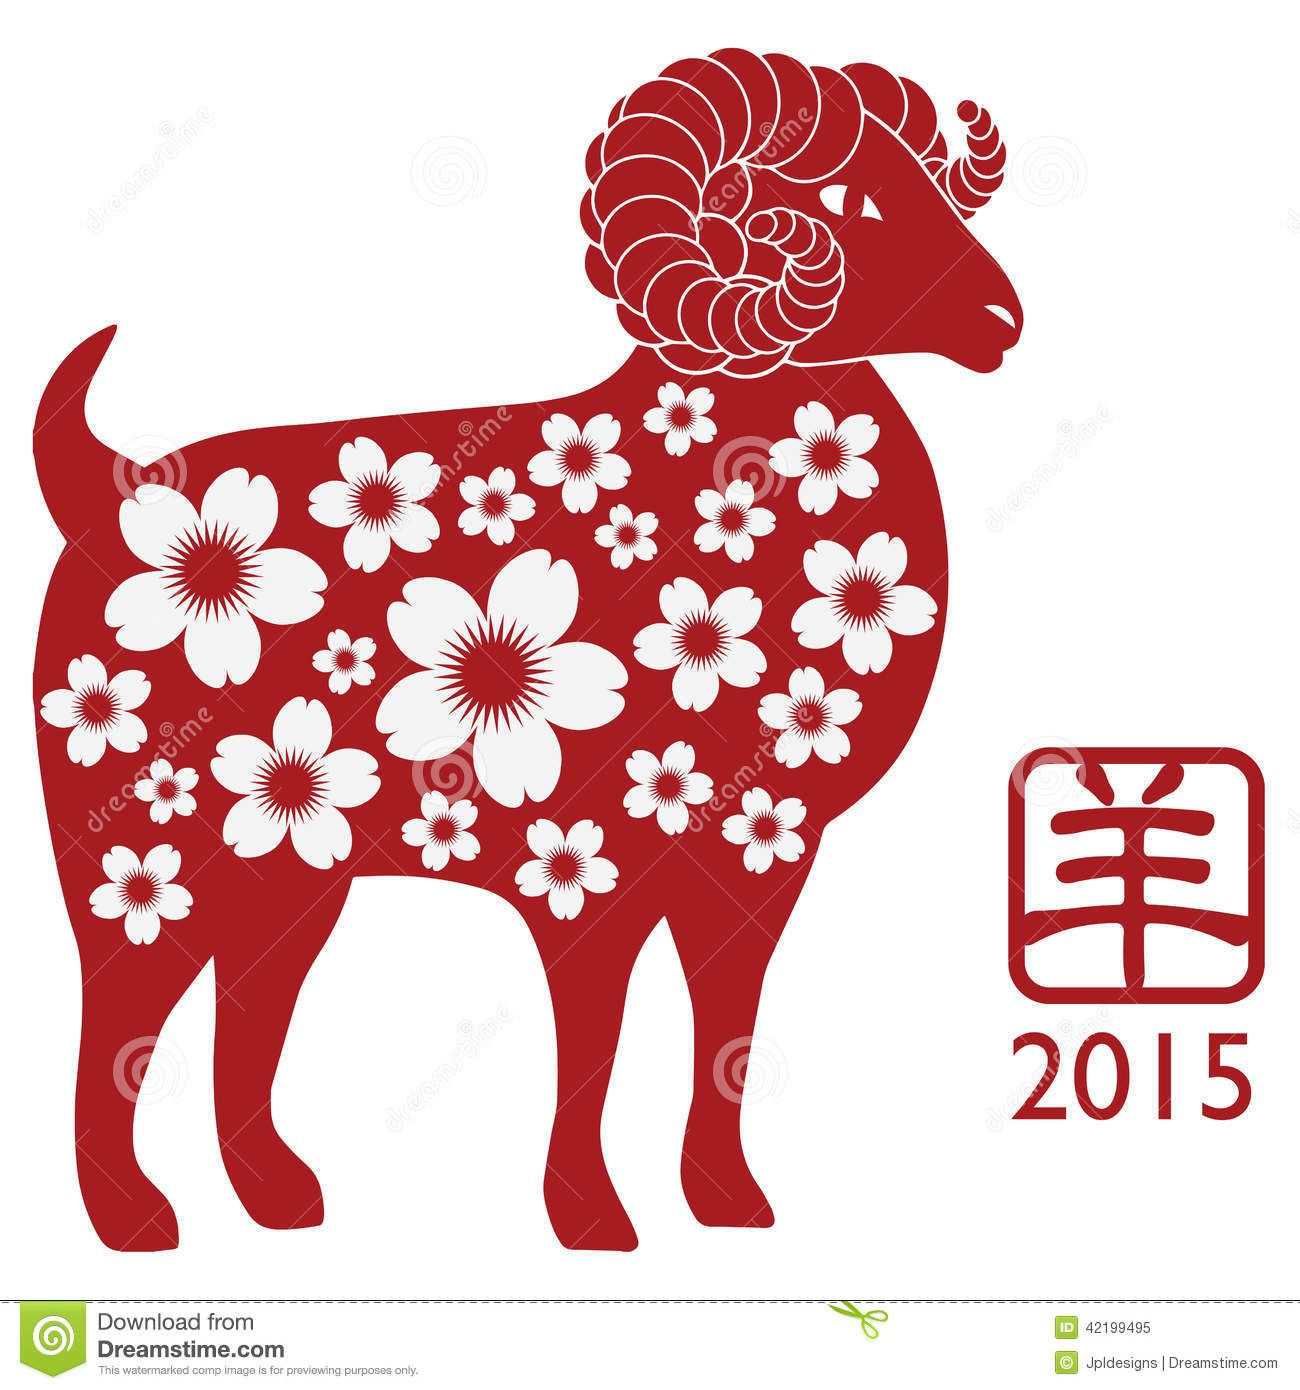 chinese new year animals wallpapers happy chinese new year goat animal red hd wallpaper wallpaper with this image has a resolution and has a size of kb - Chinese New Year 2015 Animal